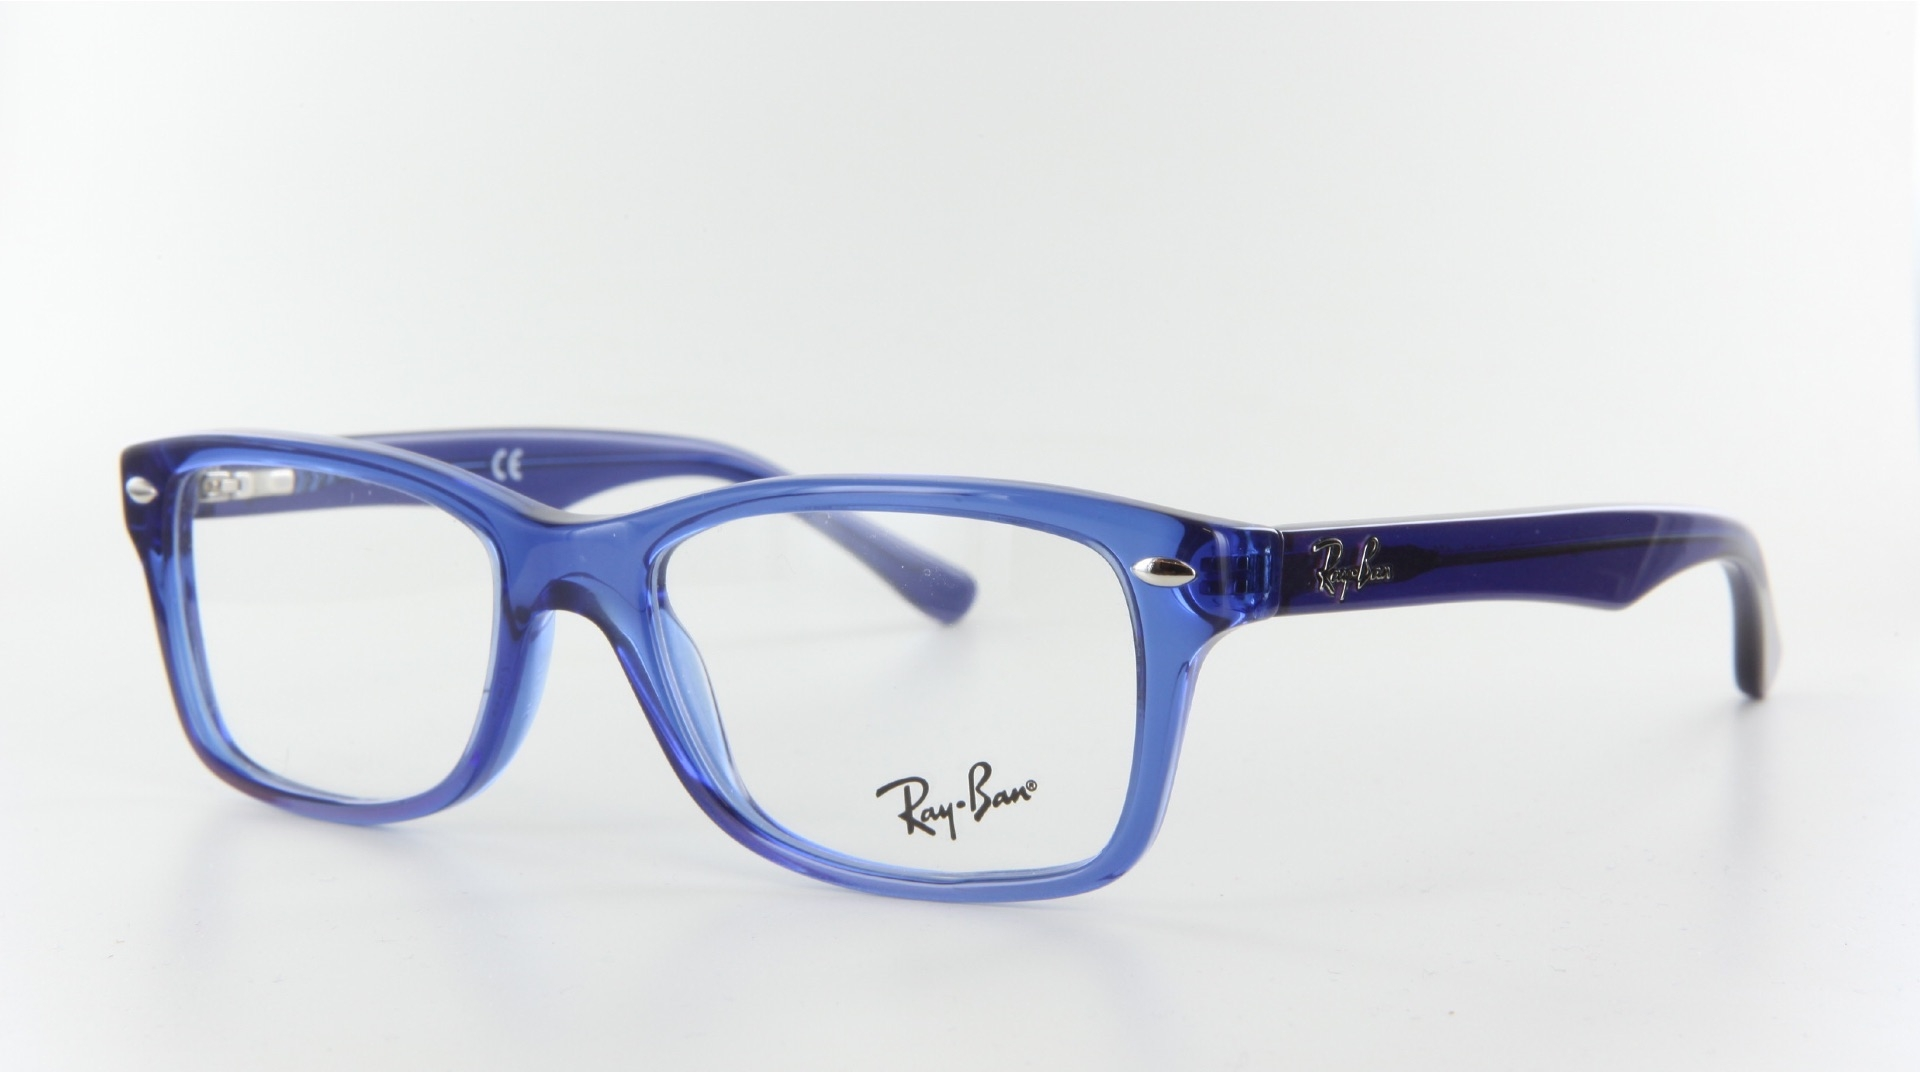 Ray-Ban - ref: 73597